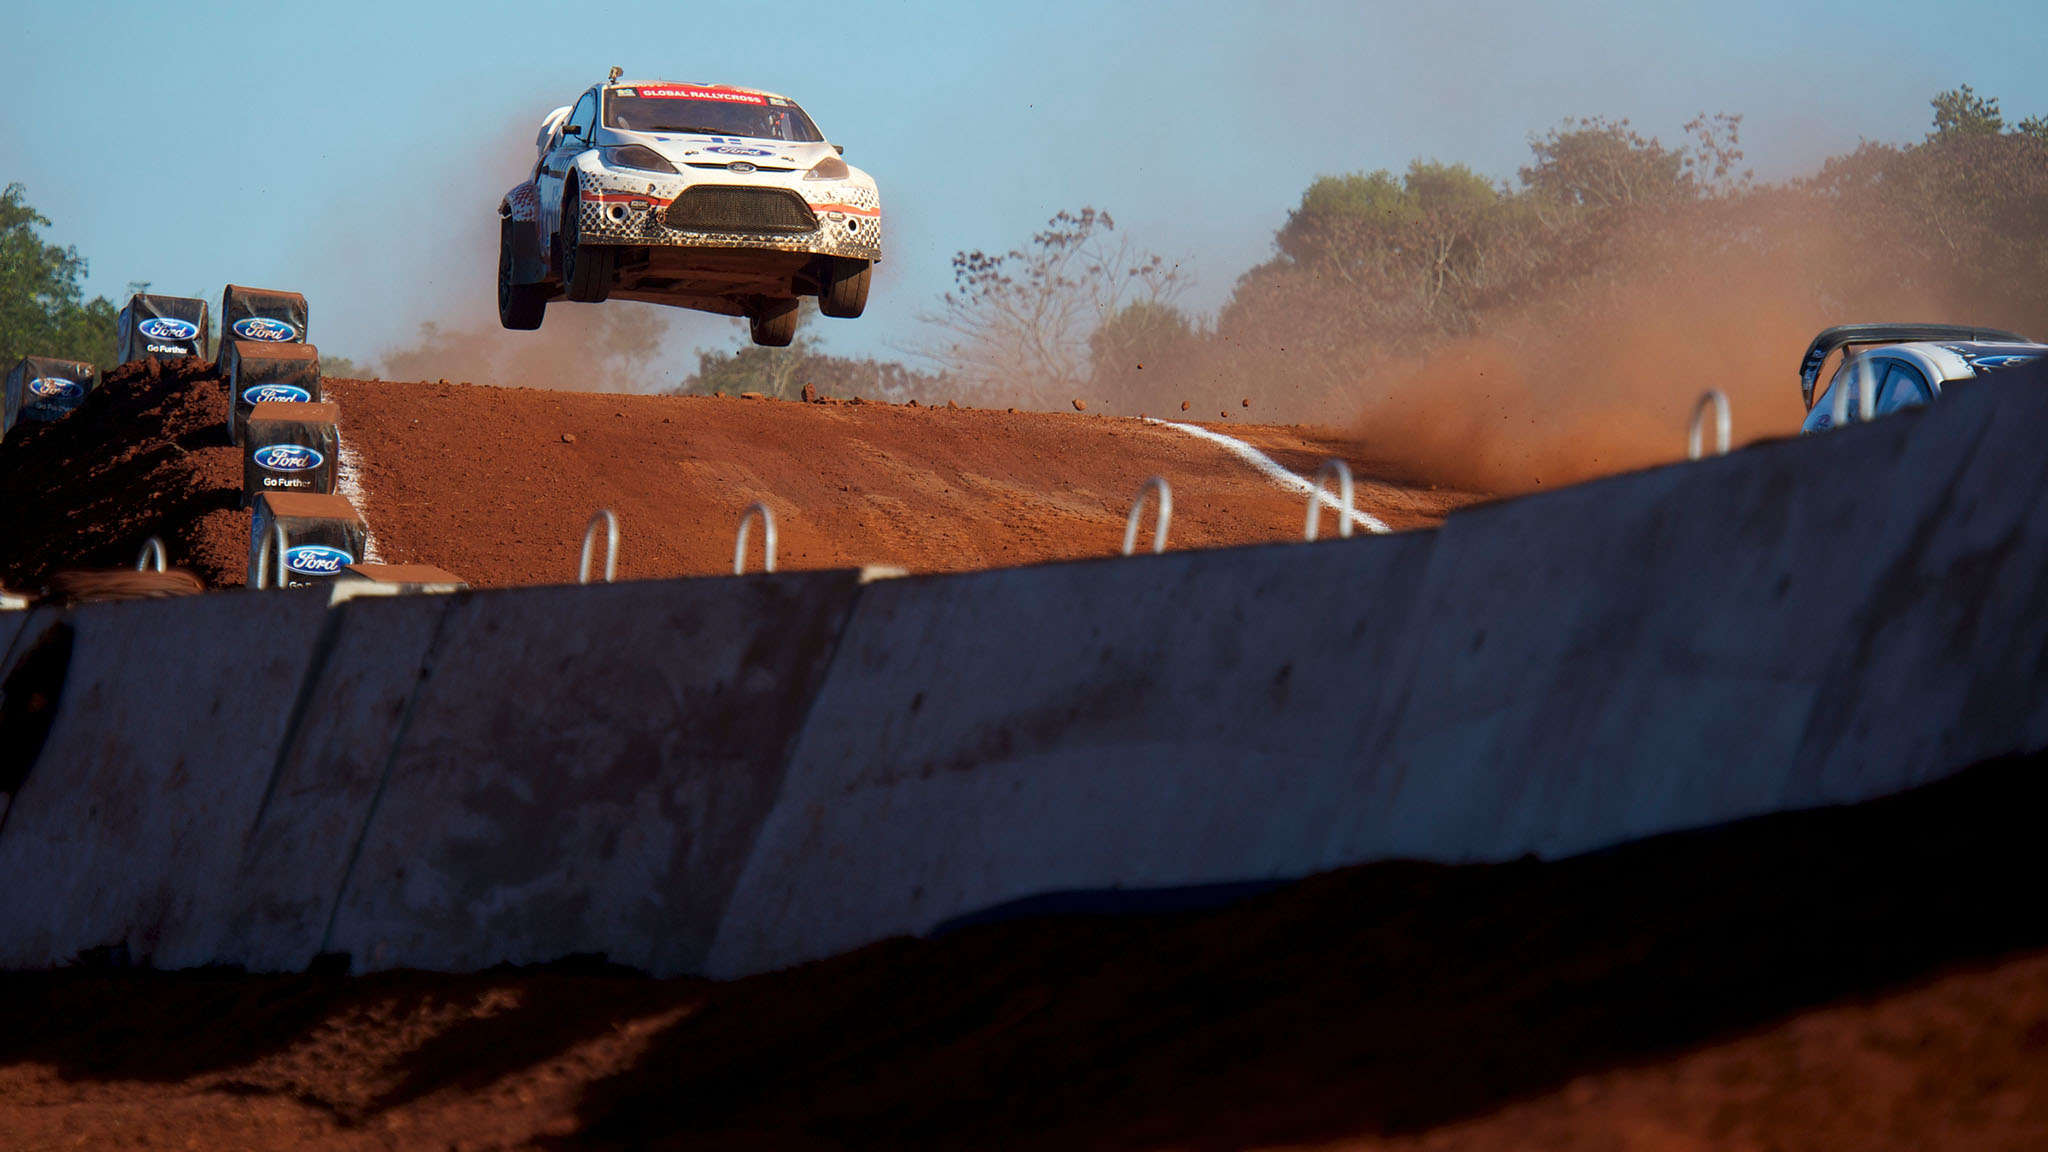 Scott Speed has competed in Formula One and NASCAR. He won the first X Games RallyCross event he ever raced in: Foz do Iguaçu.